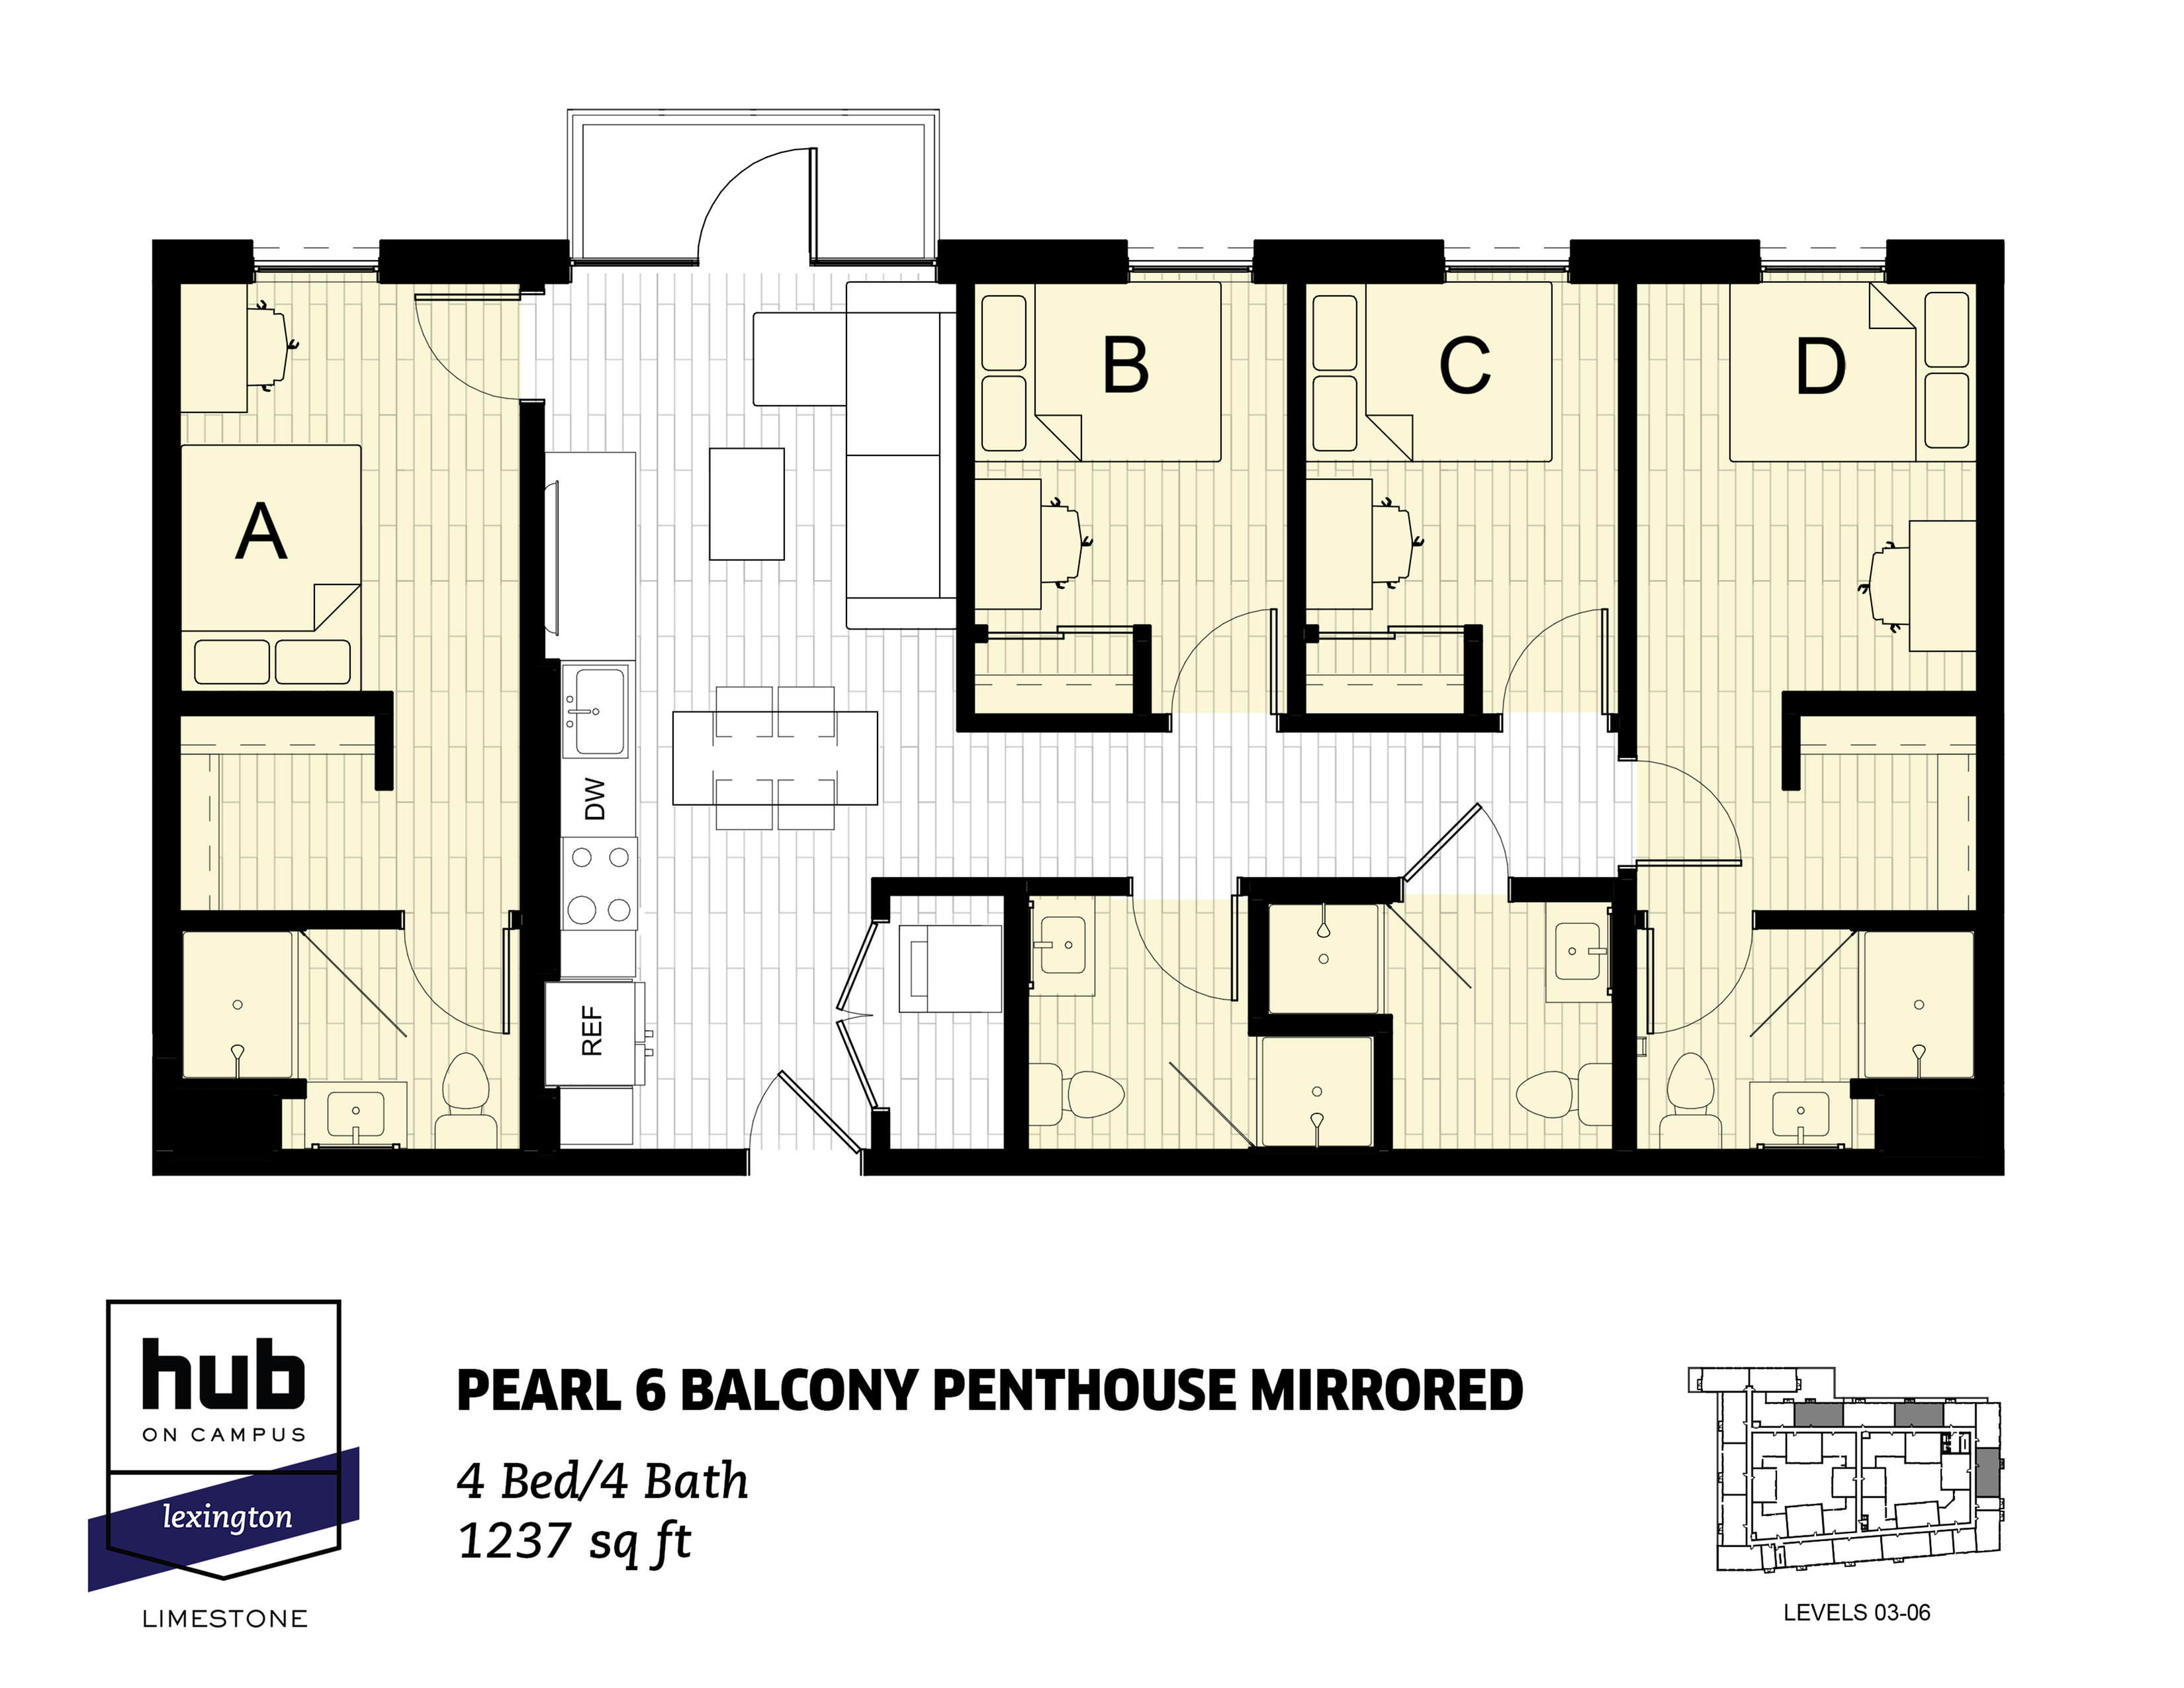 Pearl 6 Balcony Penthouse Mirrored